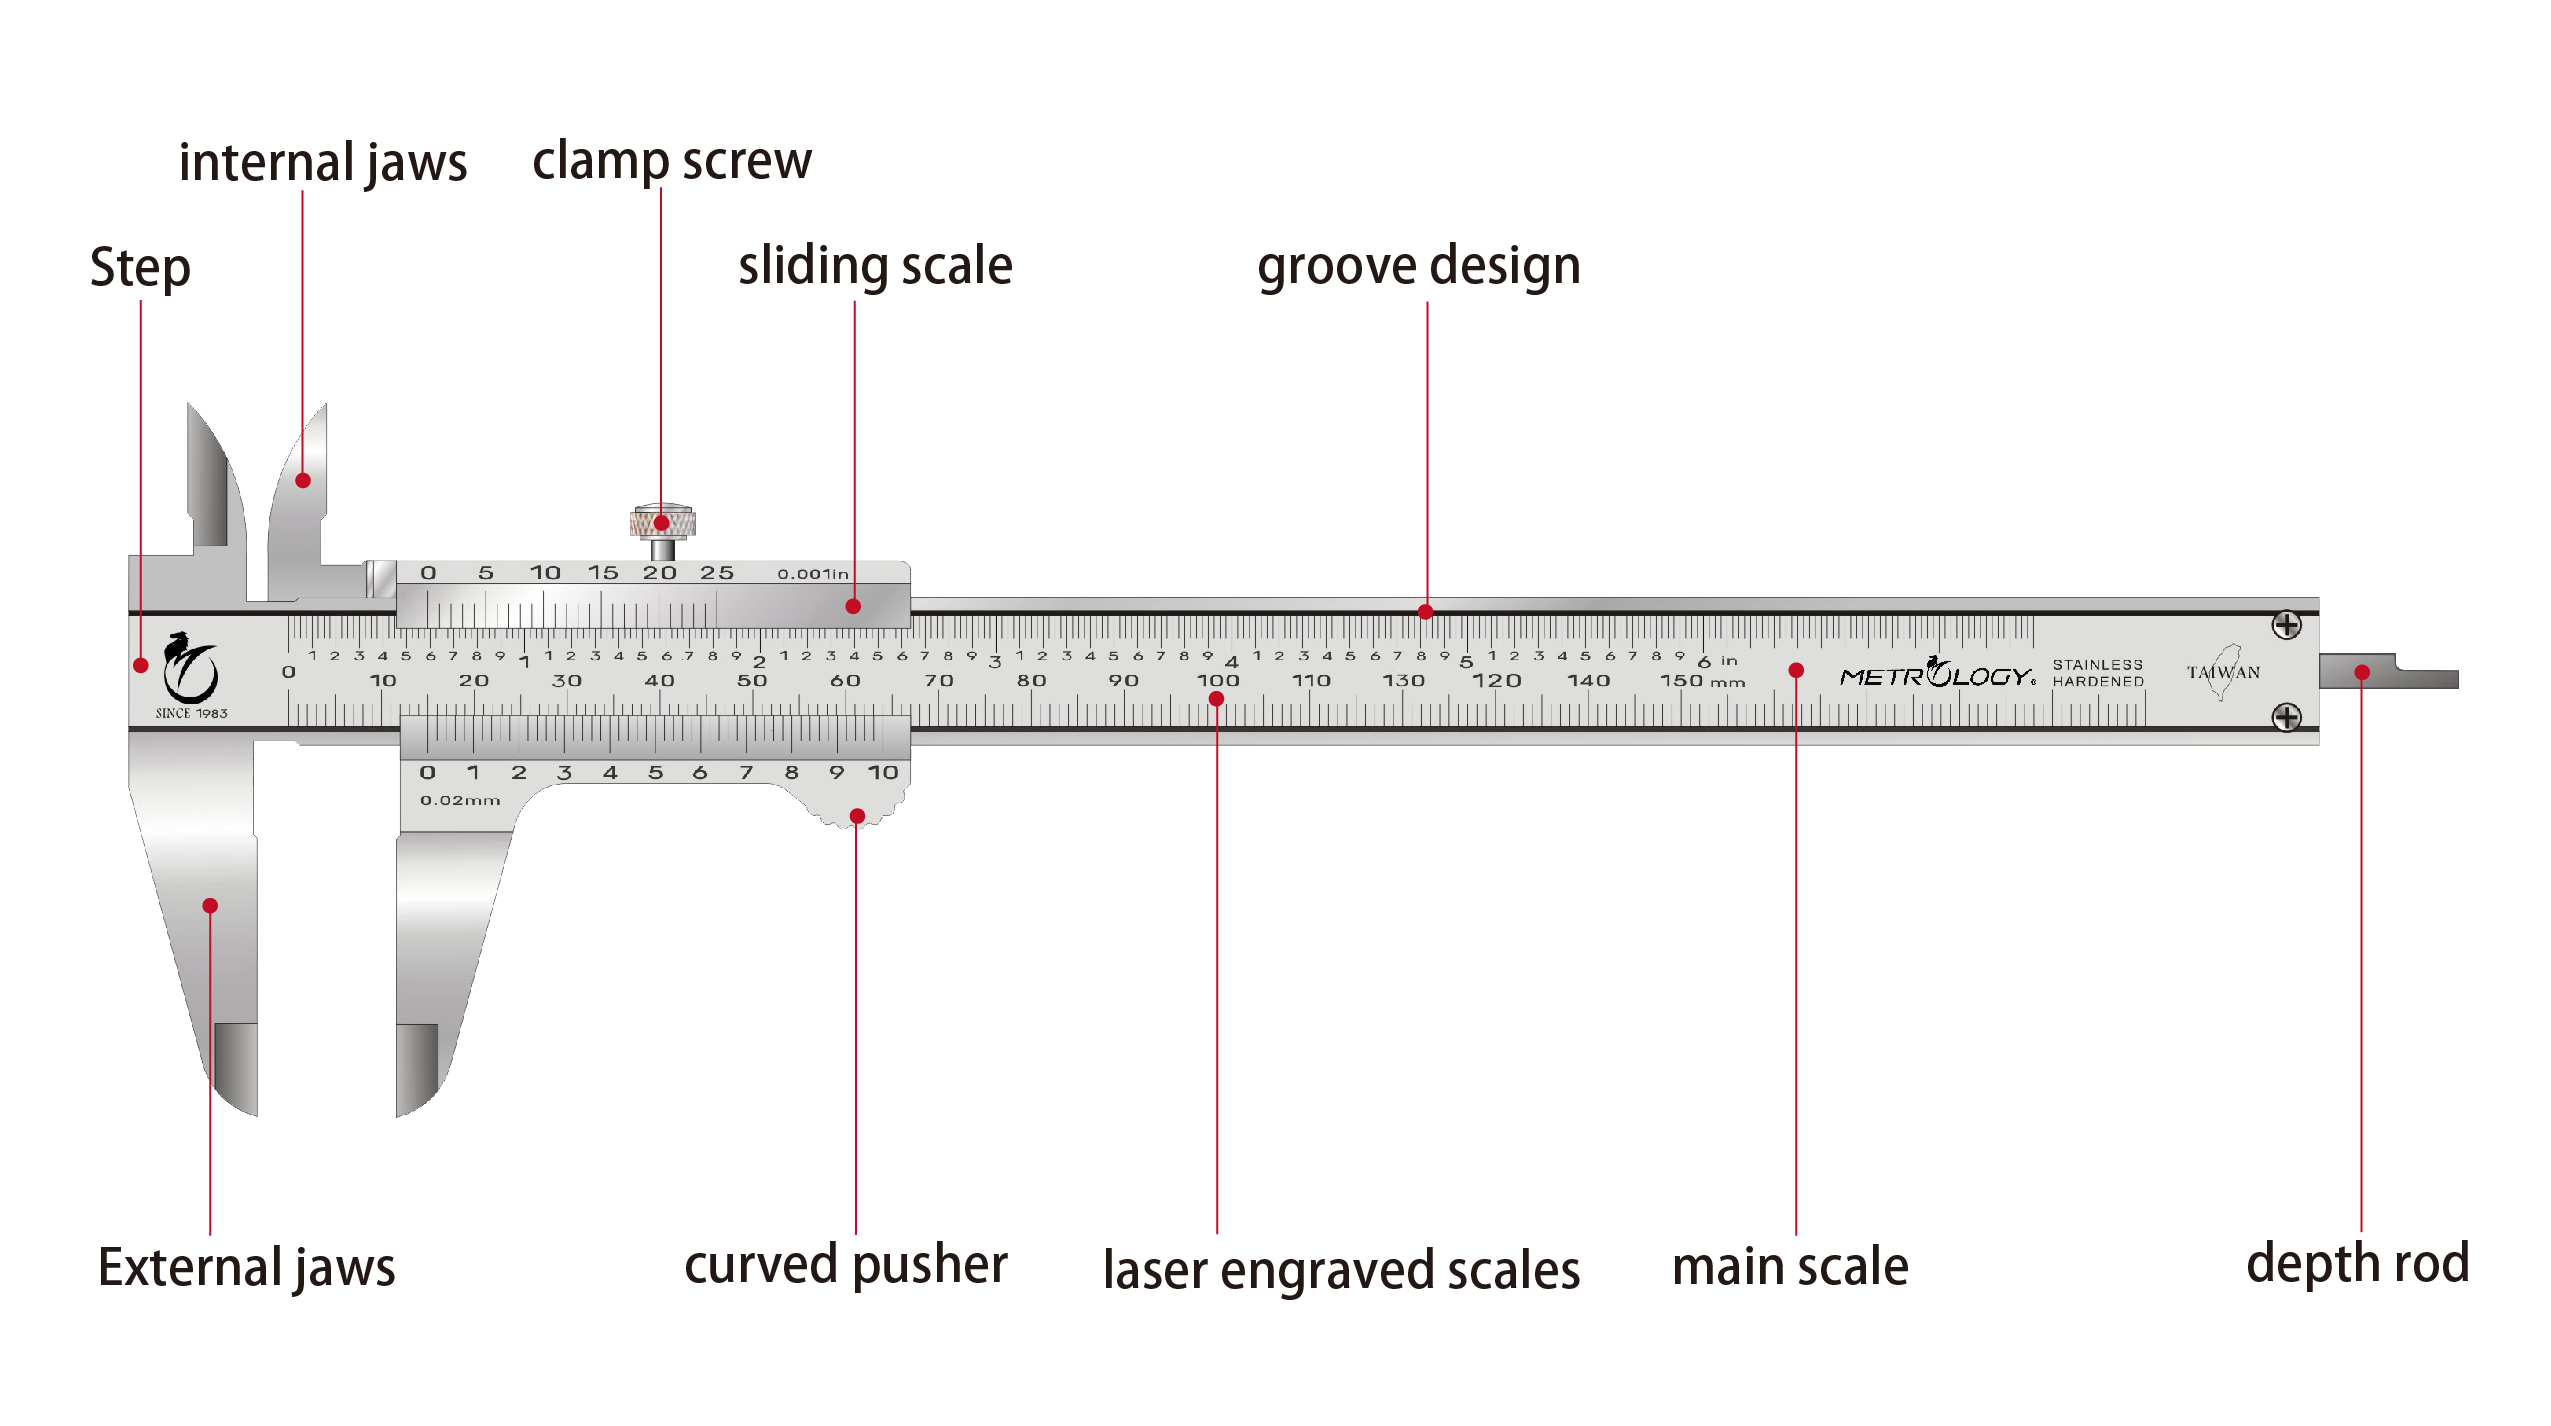 vernier caliper diagram metrology technology research development rh metrology com tw vernier caliper diagram in hindi vernier caliper diagram drawing